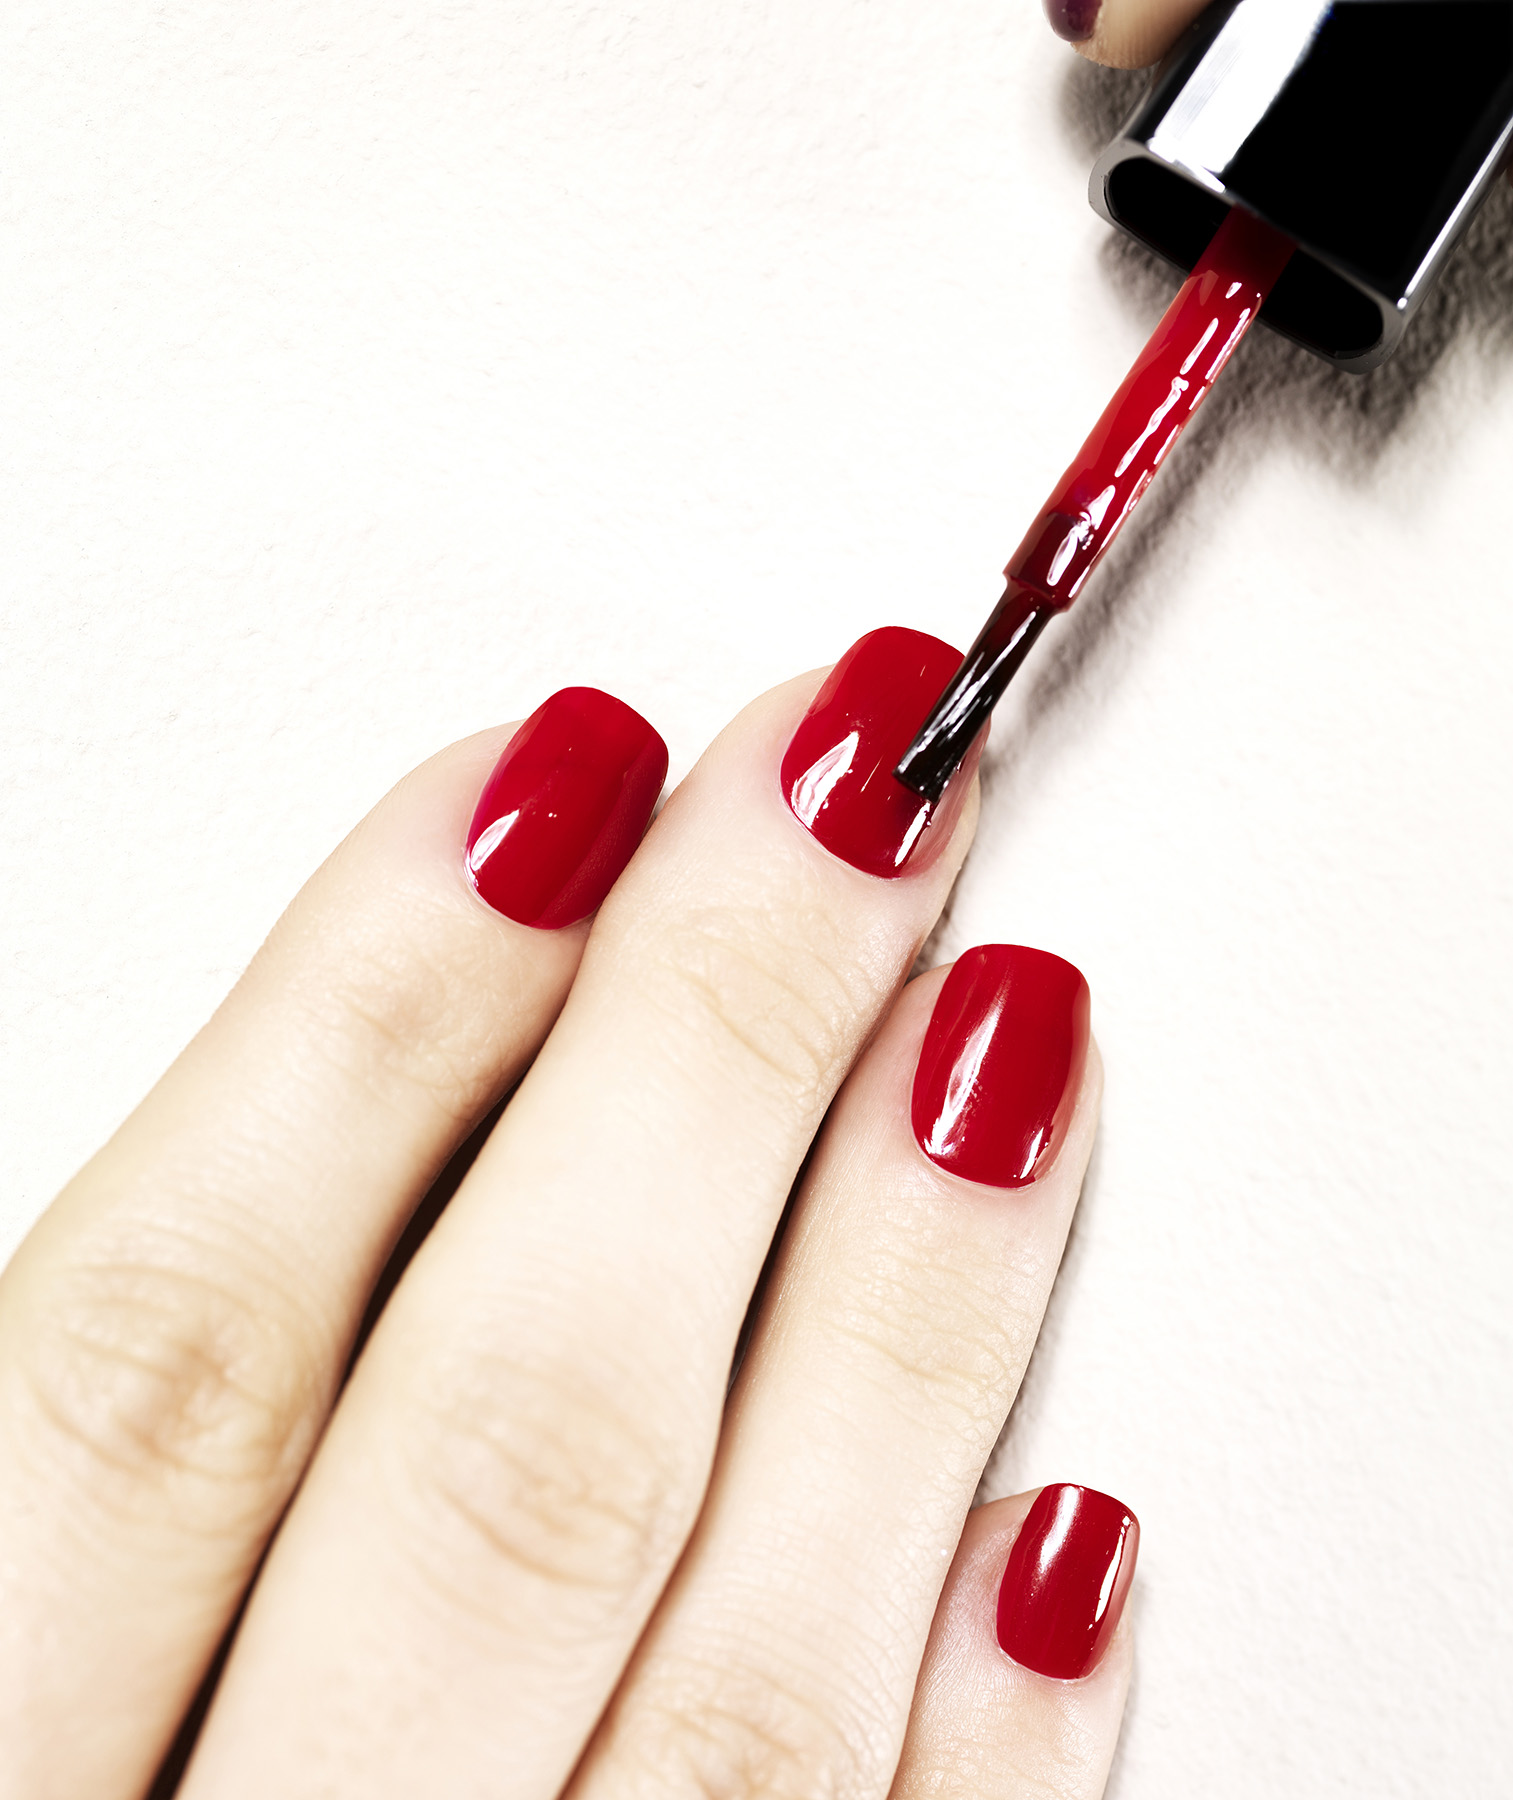 Painting nails with red polish